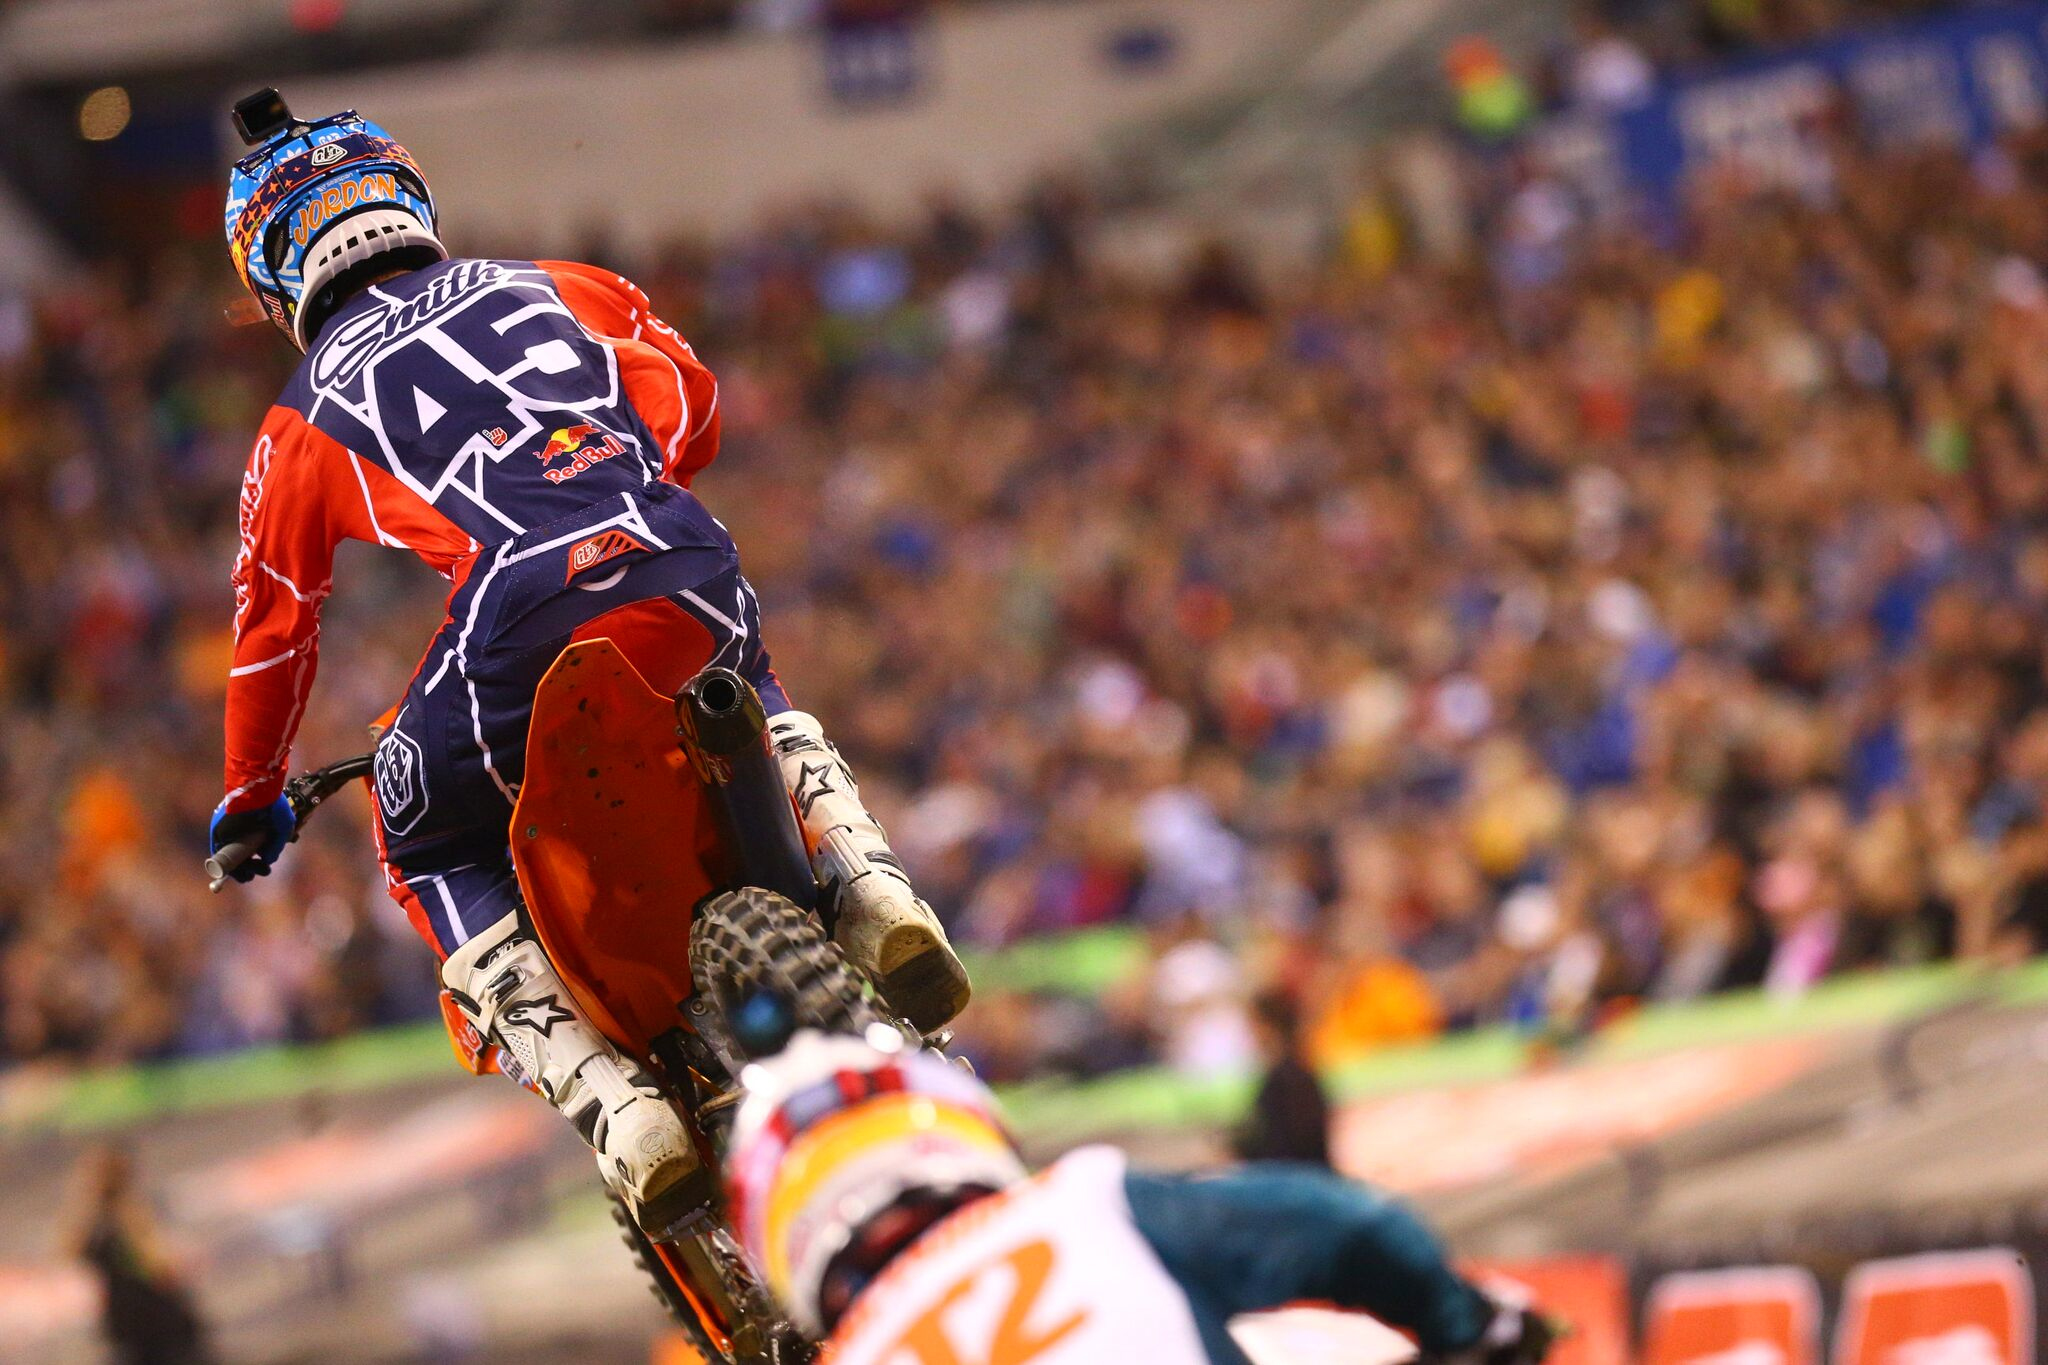 Troy Lee Designs-Red Bull-KTM's Smith Tightens Points Battle With Fourth Place at Indianapolis Showdown